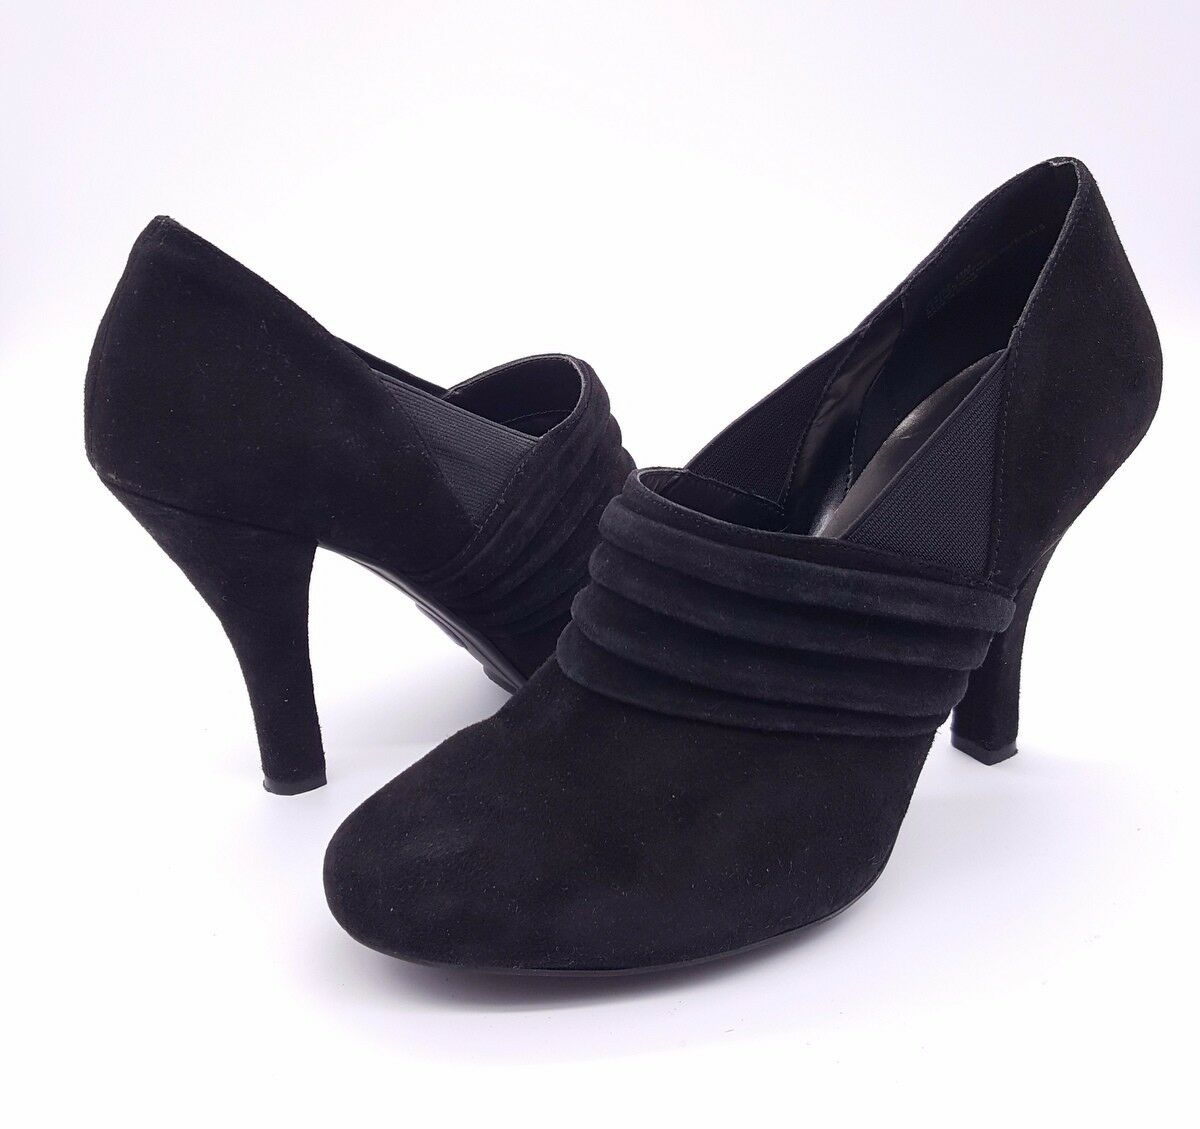 ME TOO Size 11 Black Suede Slip On Round Closed Toe Ankle Bootie Pump Shoes